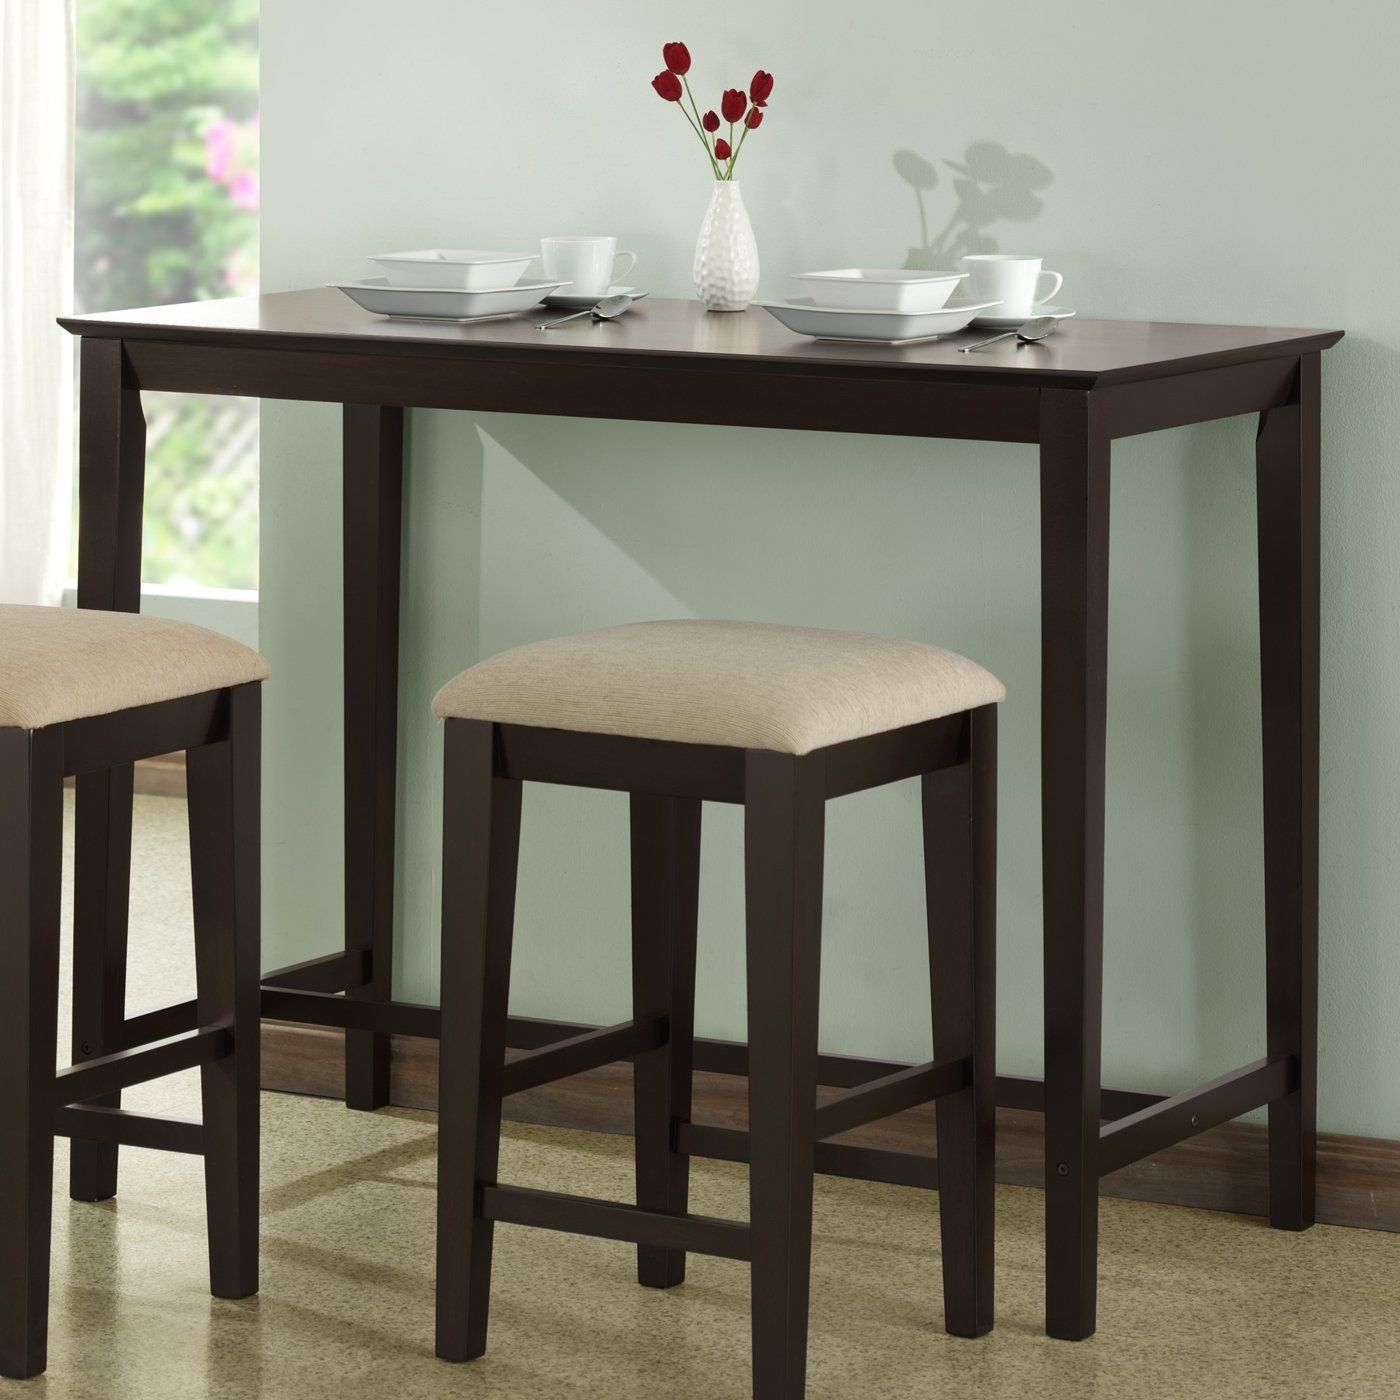 Monarch Specialties I 1359 Counter Height Kitchen Table ...